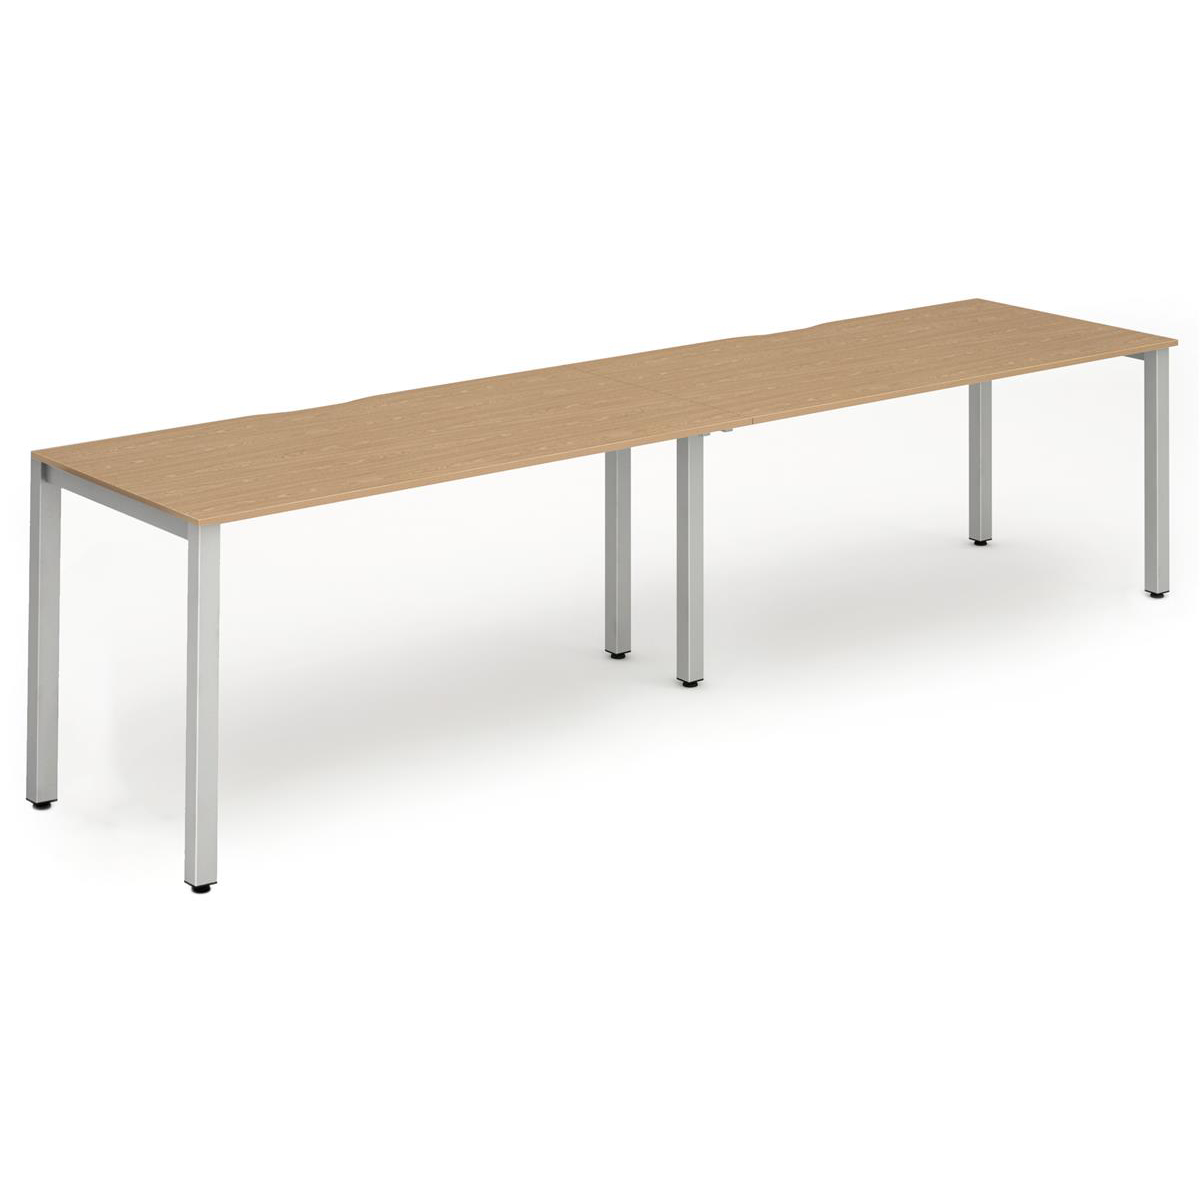 Trexus Bench Desk 2 Person Side to Side Configuration Silver Leg 3200x800mm Oak Ref BE368